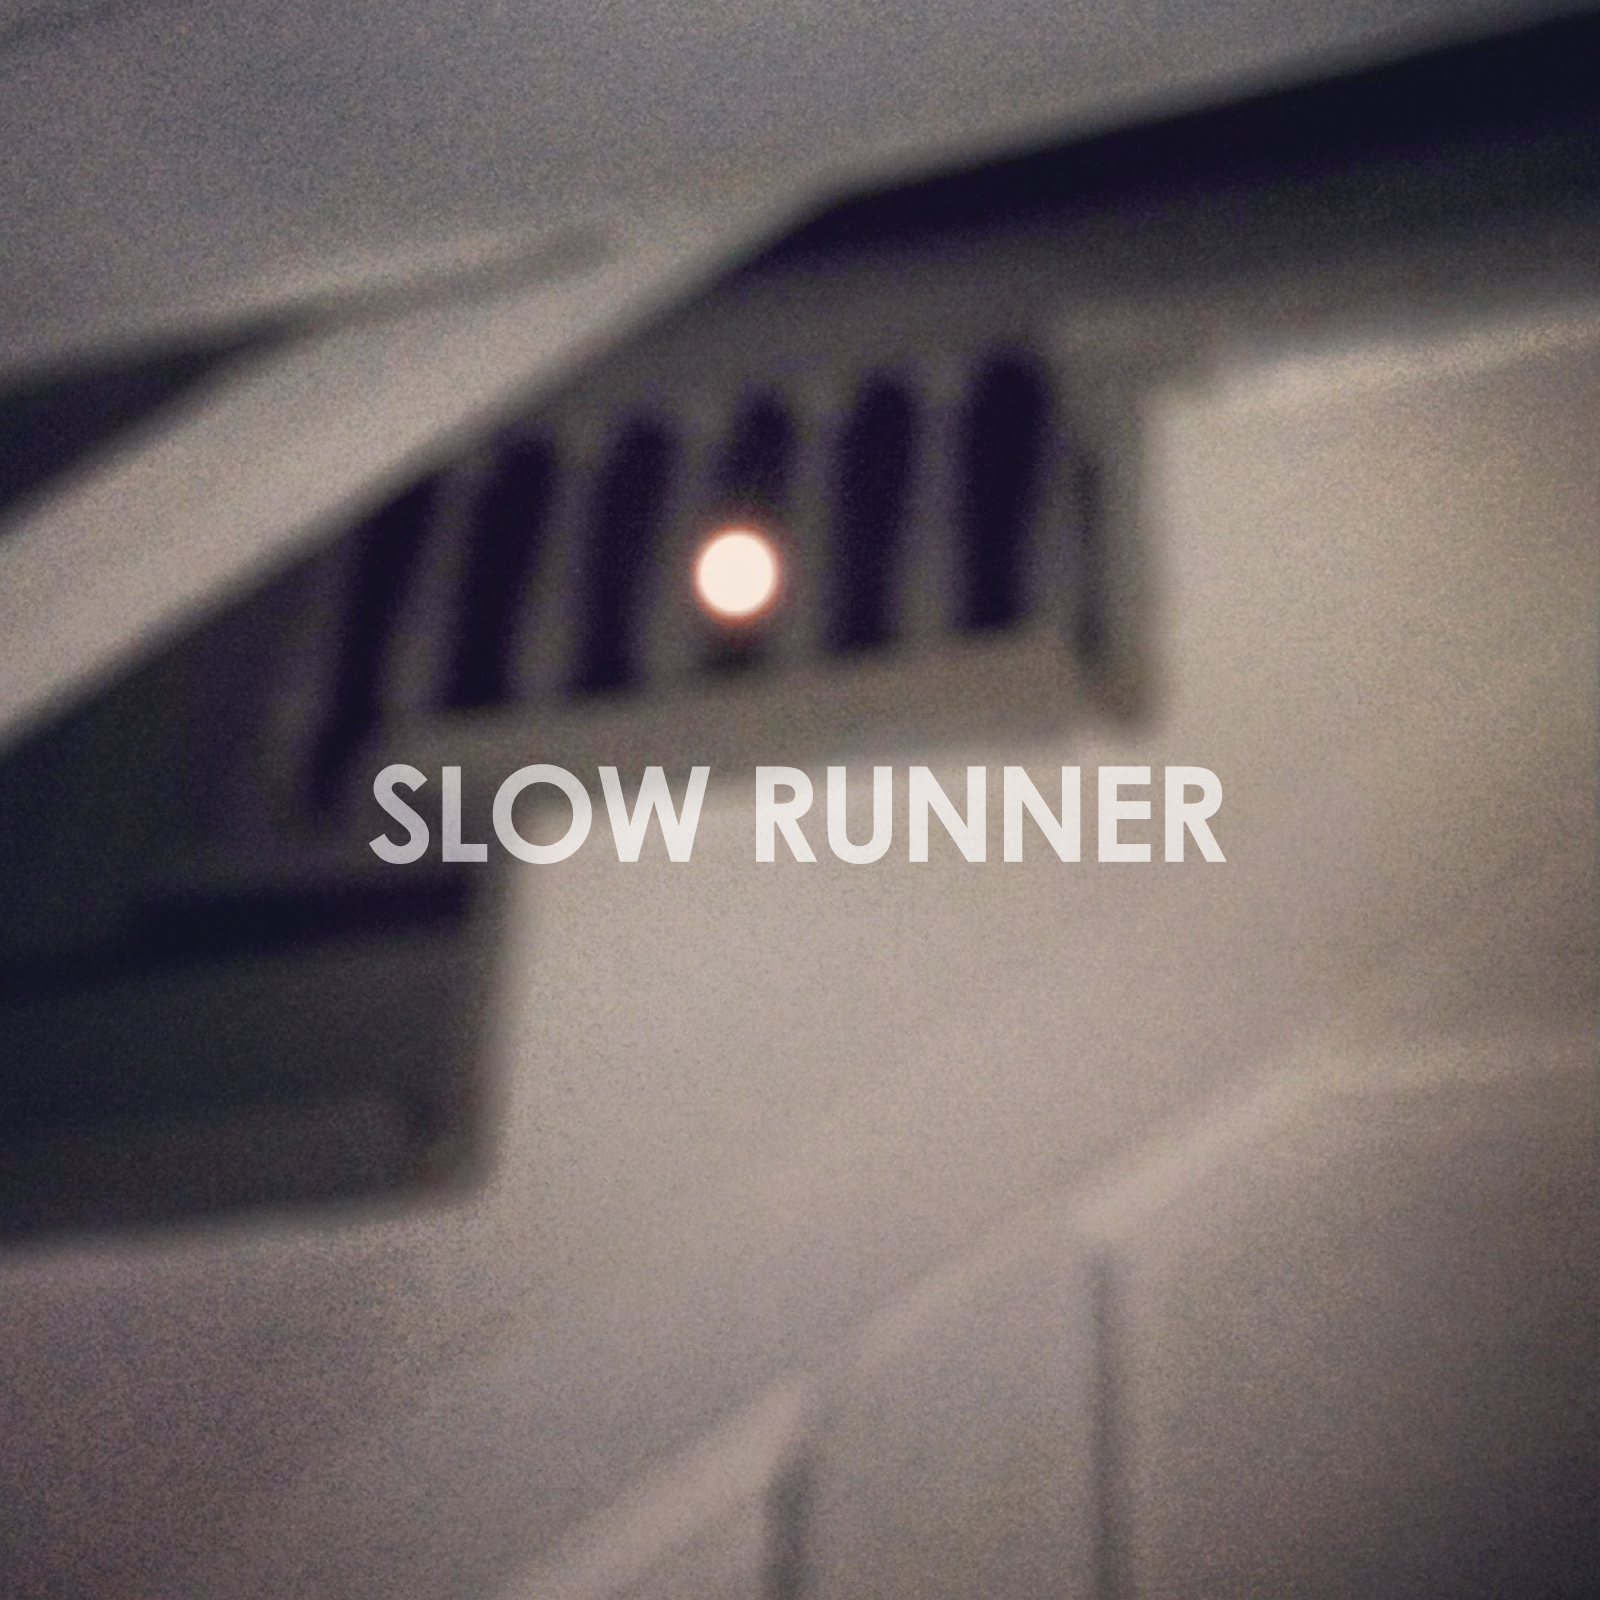 Slow Runner Release New Single, Announce Album Rerelease